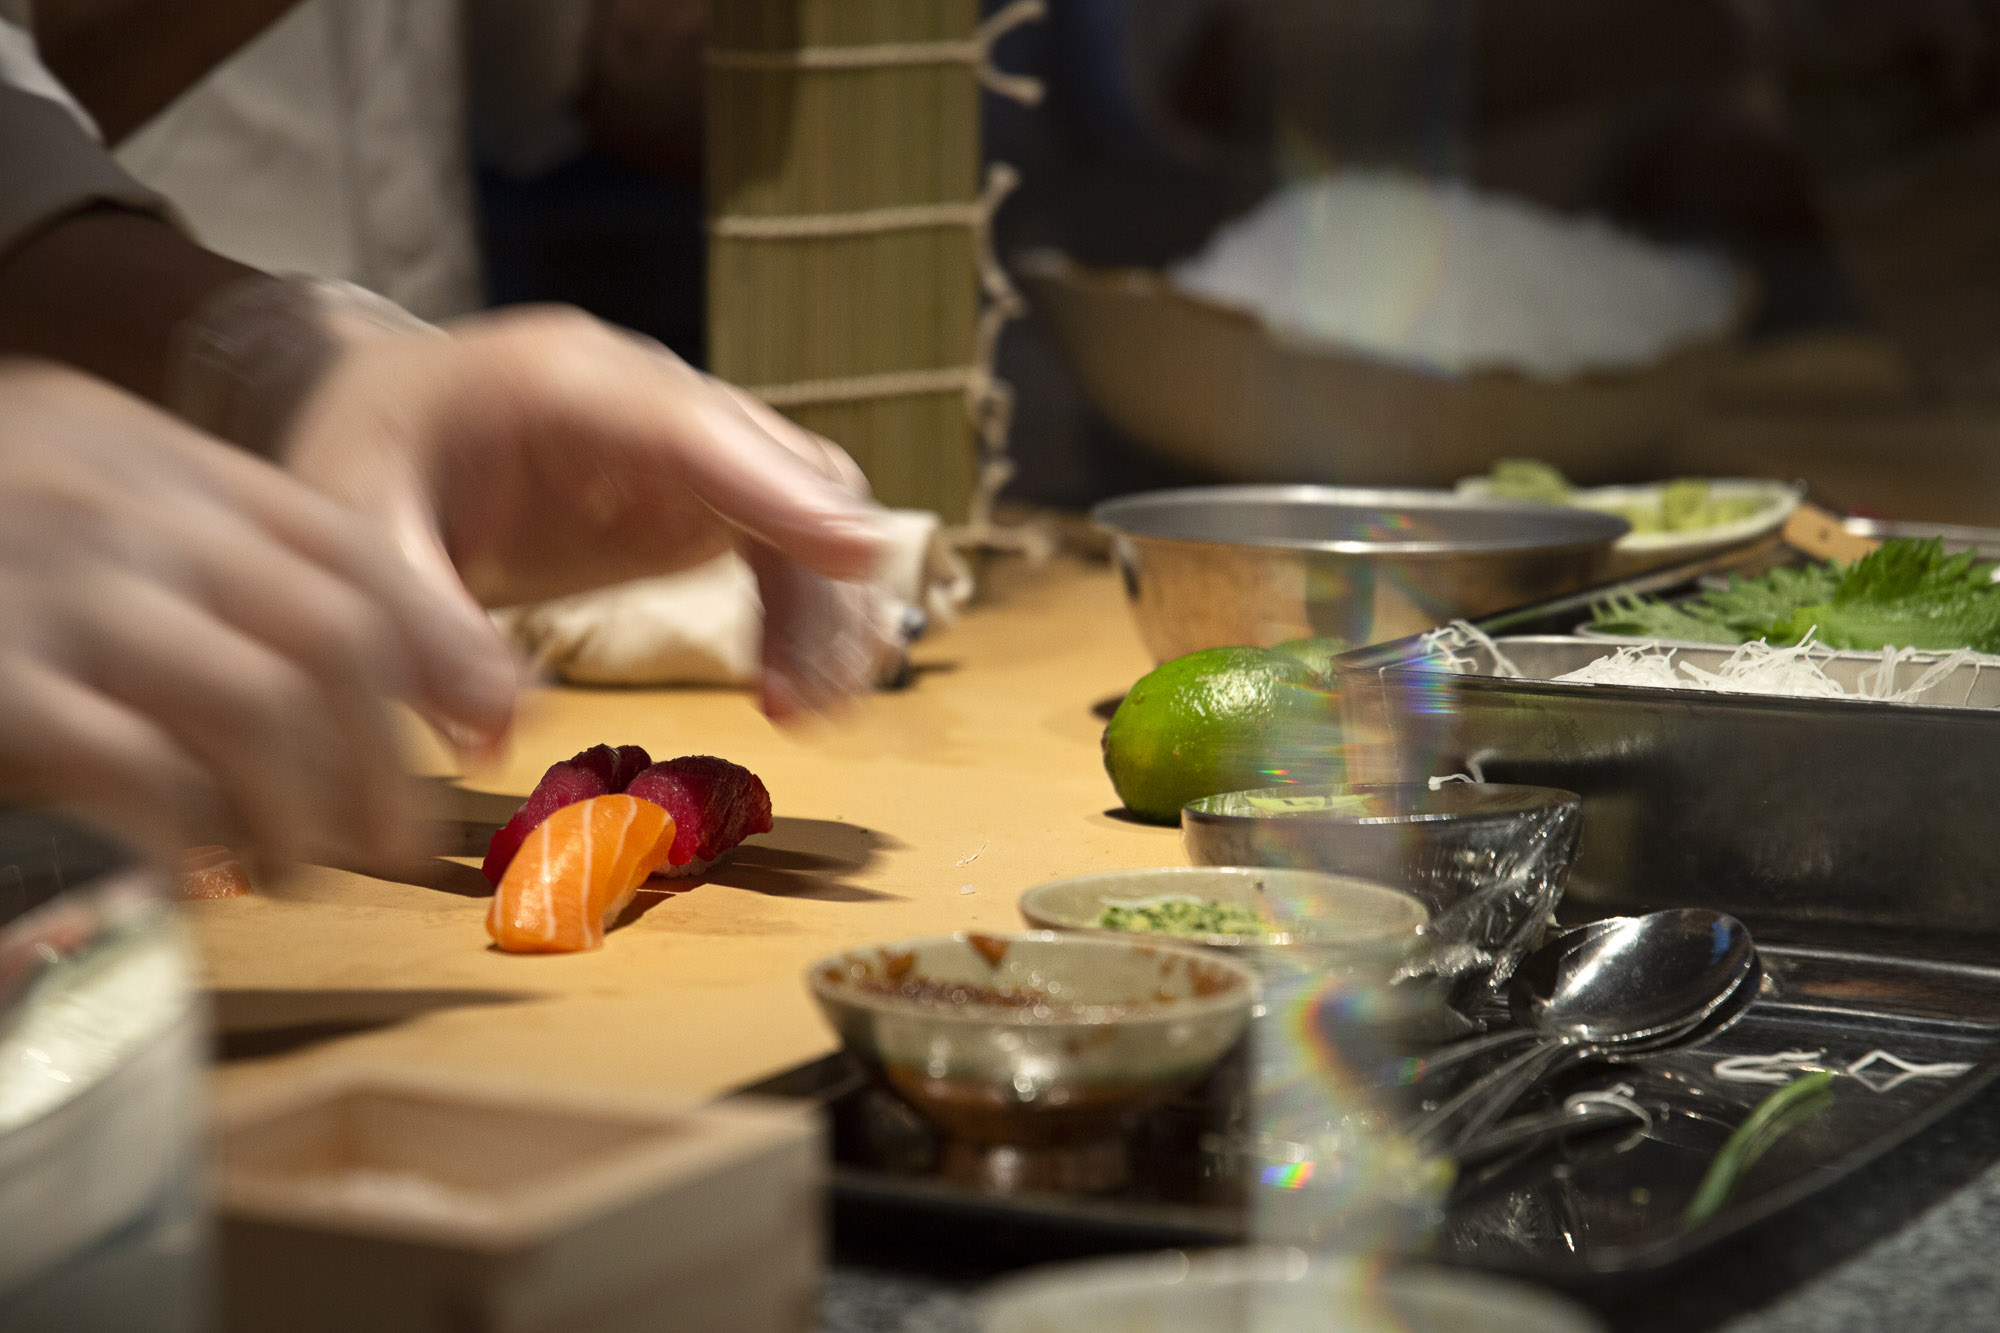 Hands reach towards a piece of sushi set on a cutting board surrounded by dishes of indiscernible ingredients